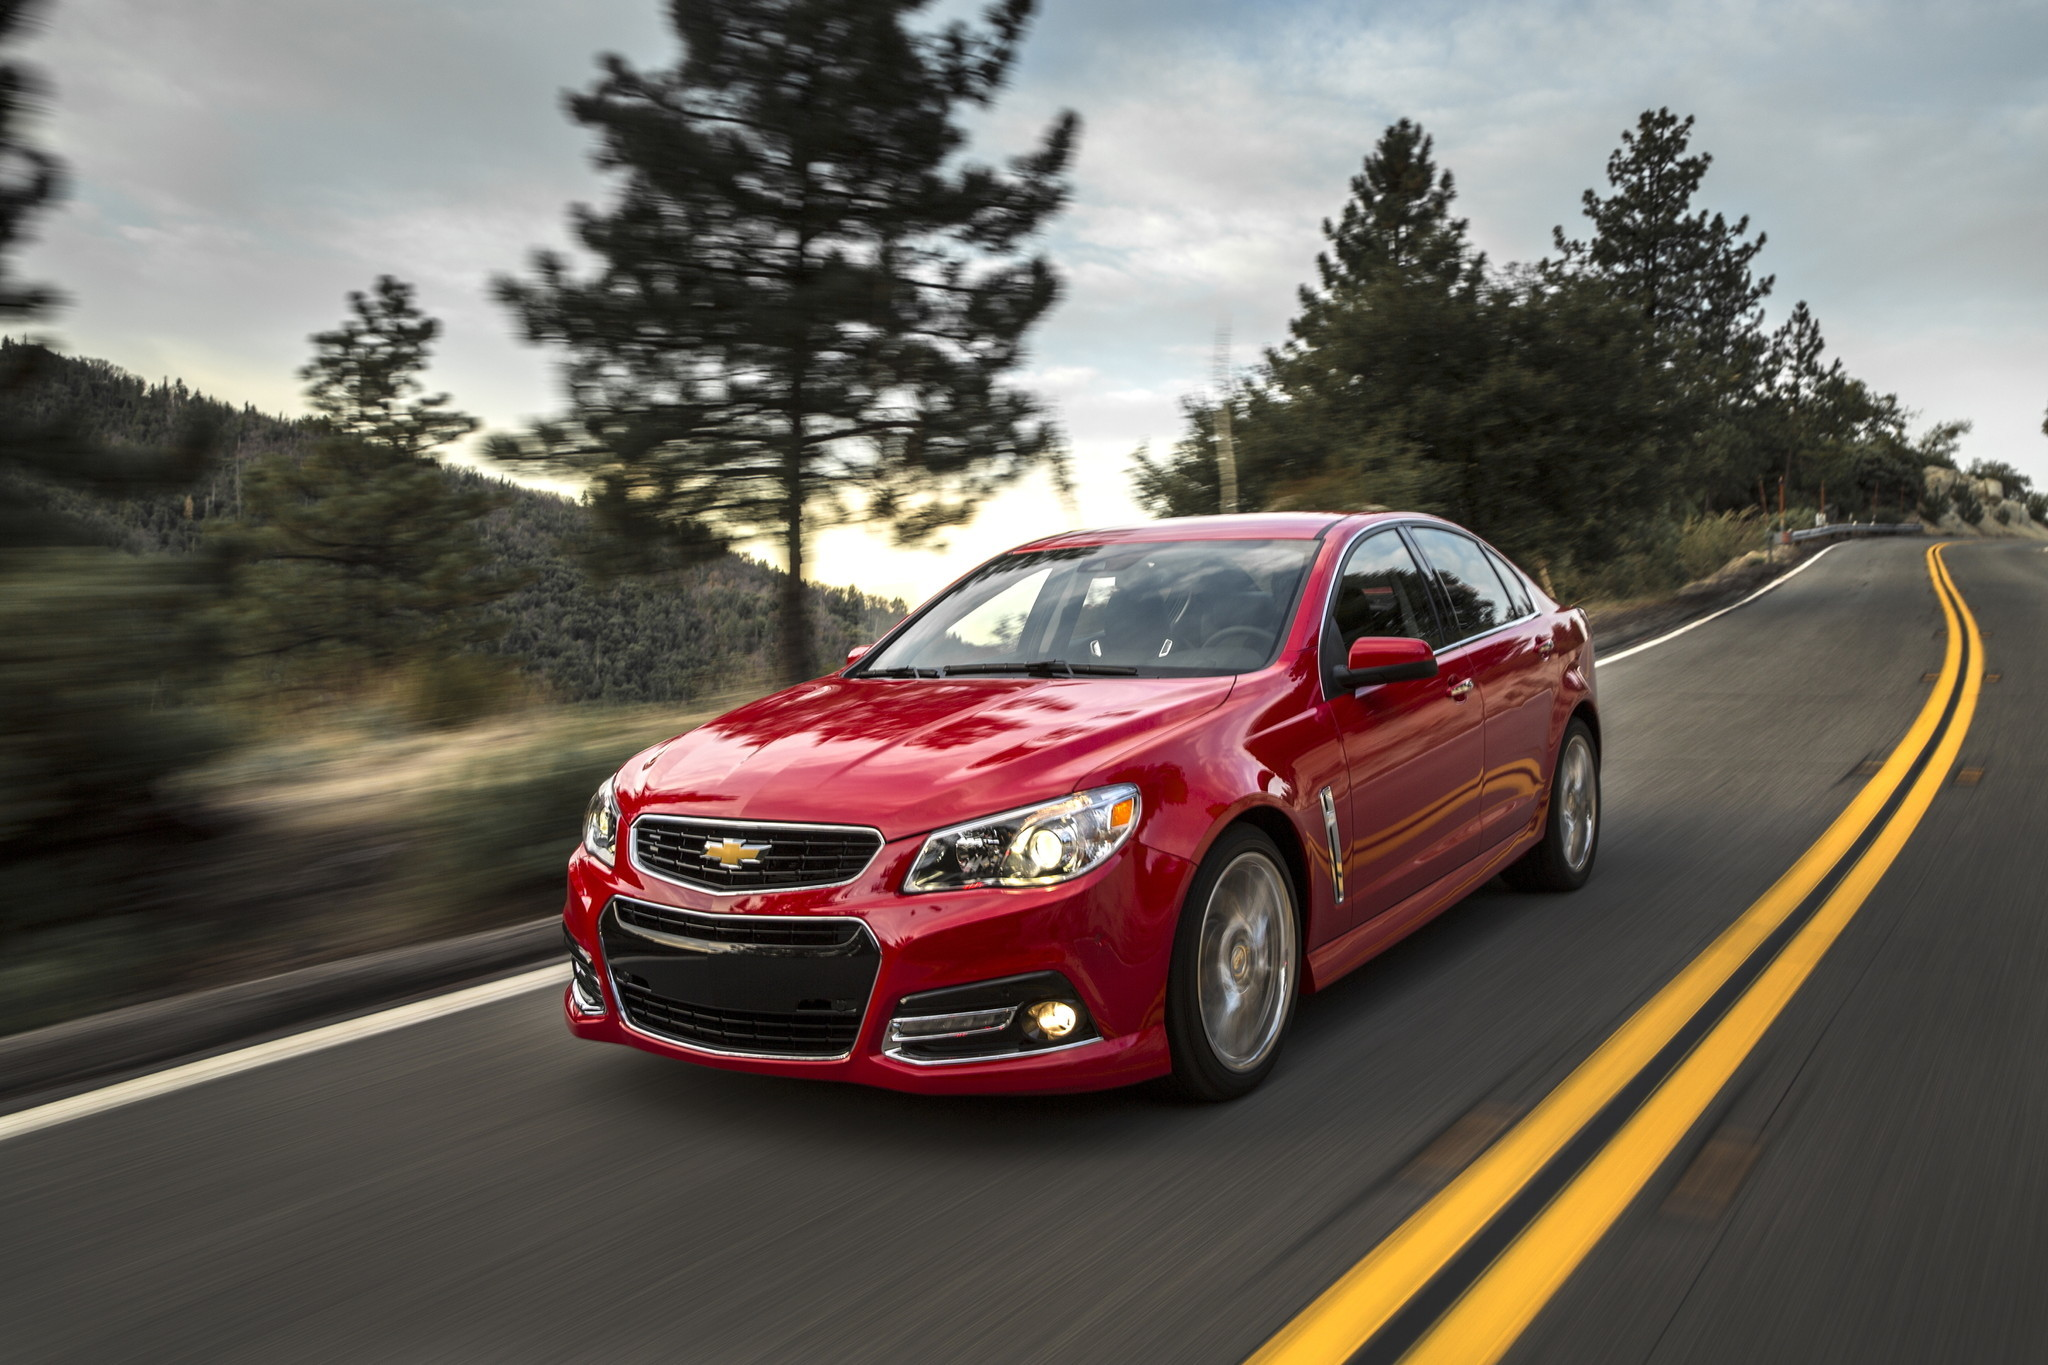 Chevy Adds Manual Transmission To 2015 Ss Performance Sedan